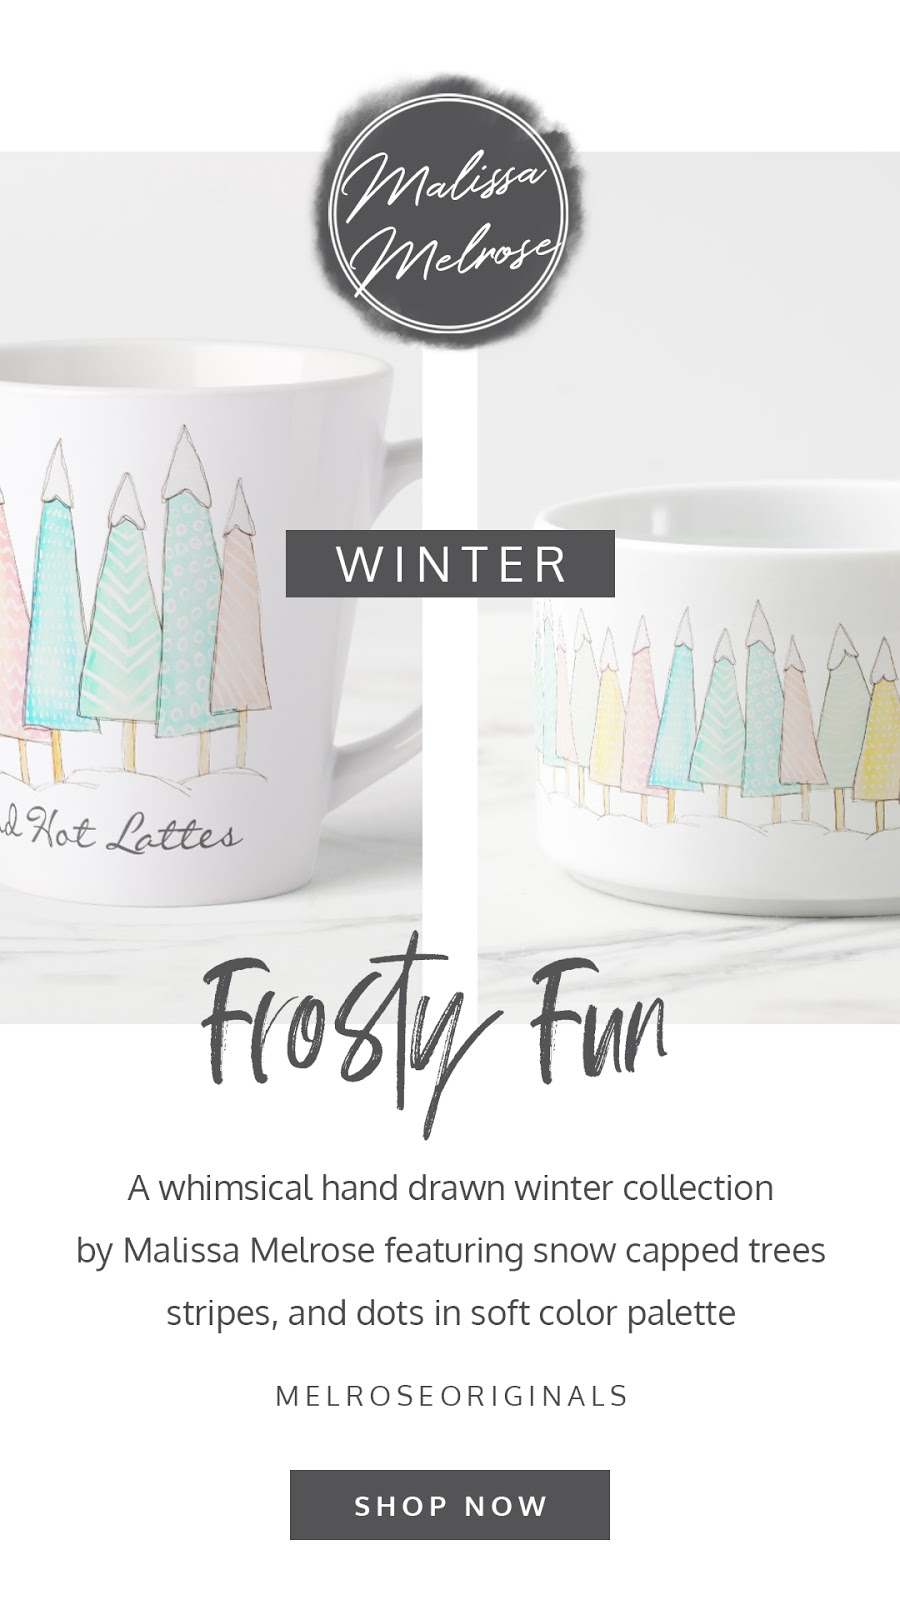 Whimsical winter home decor and gifting collection. Featuring personalized mugs, pillows, cards, gifts, and kitchen docor. In a mint chip green, crocus yellow, pretty pink, and winterscape teal color palette.